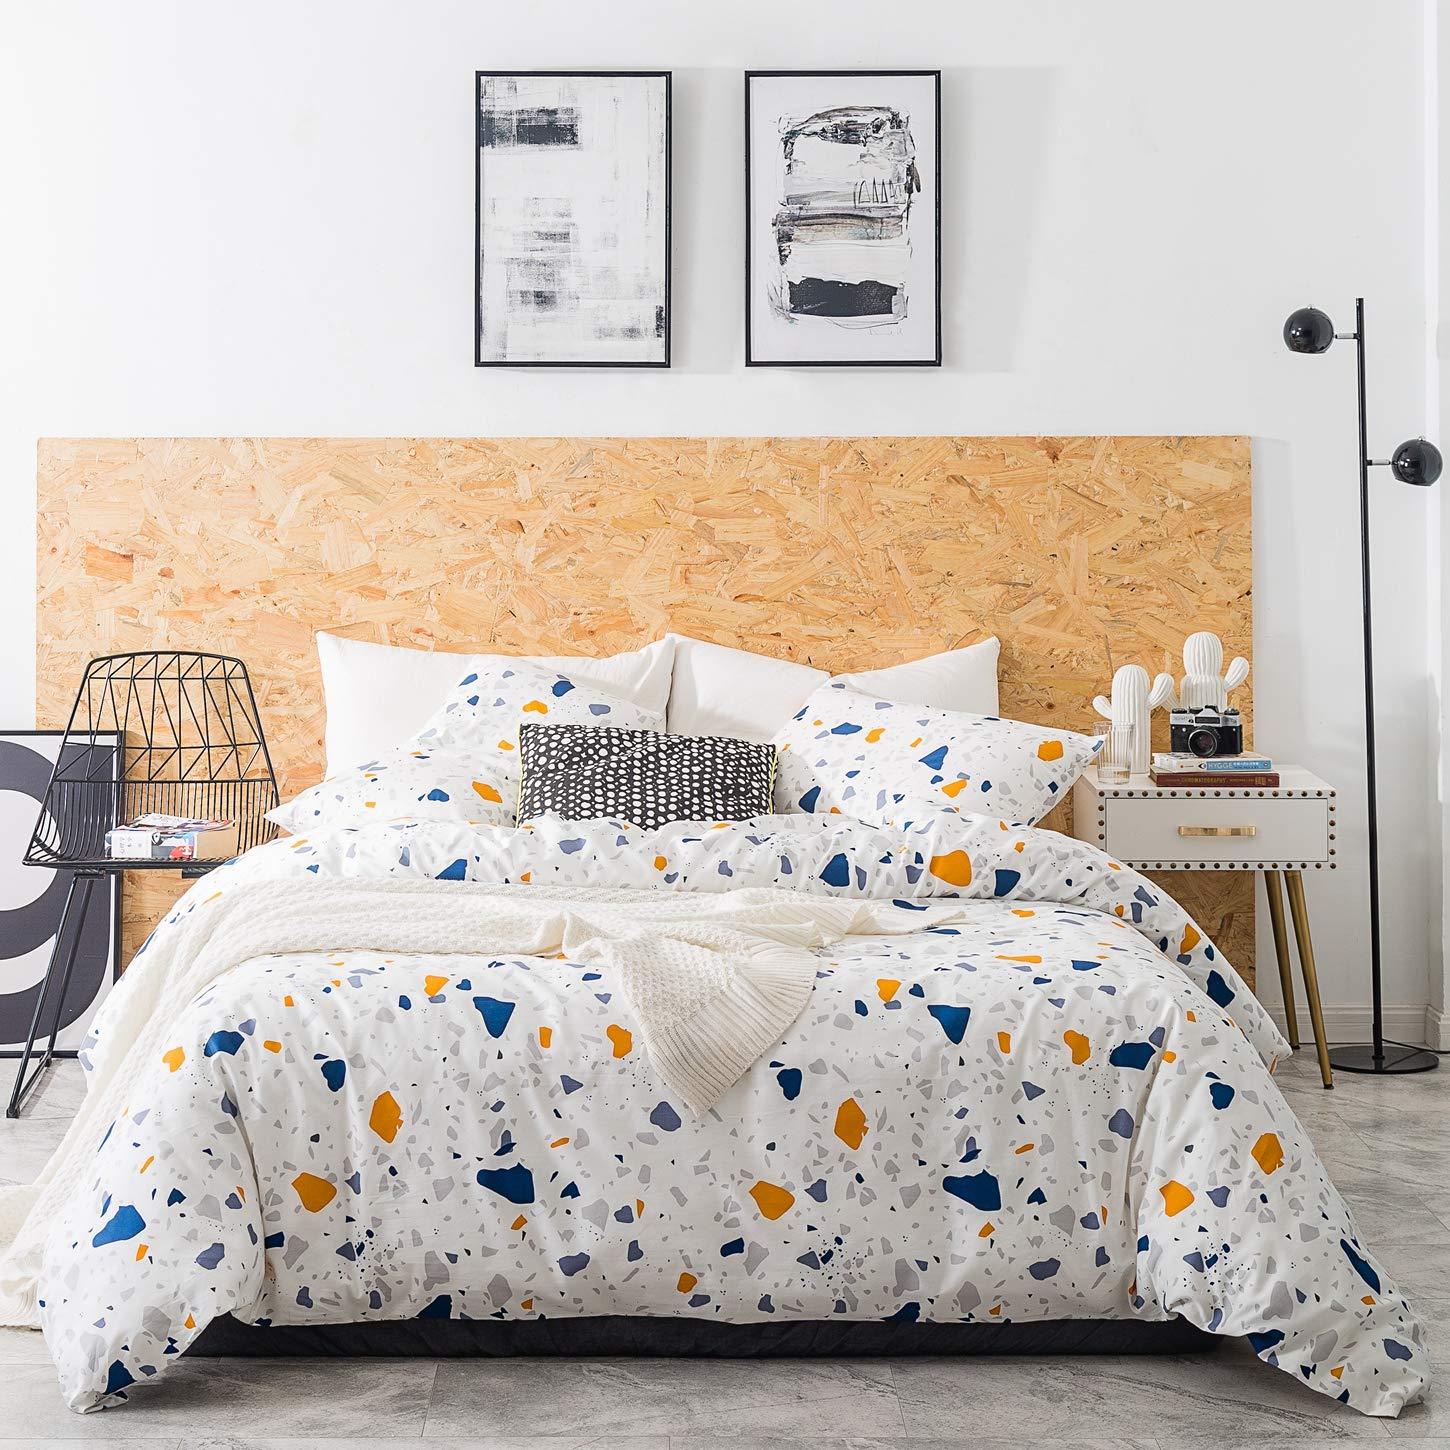 SUSYBAO 3 Pieces Duvet Cover Set 100% Natural Cotton White Queen Size Multi-Colored Stone Print Bedding with Zipper Ties 1 Watercolor Pattern Duvet Cover 2 Pillowcases Hotel Quality Soft Breathable